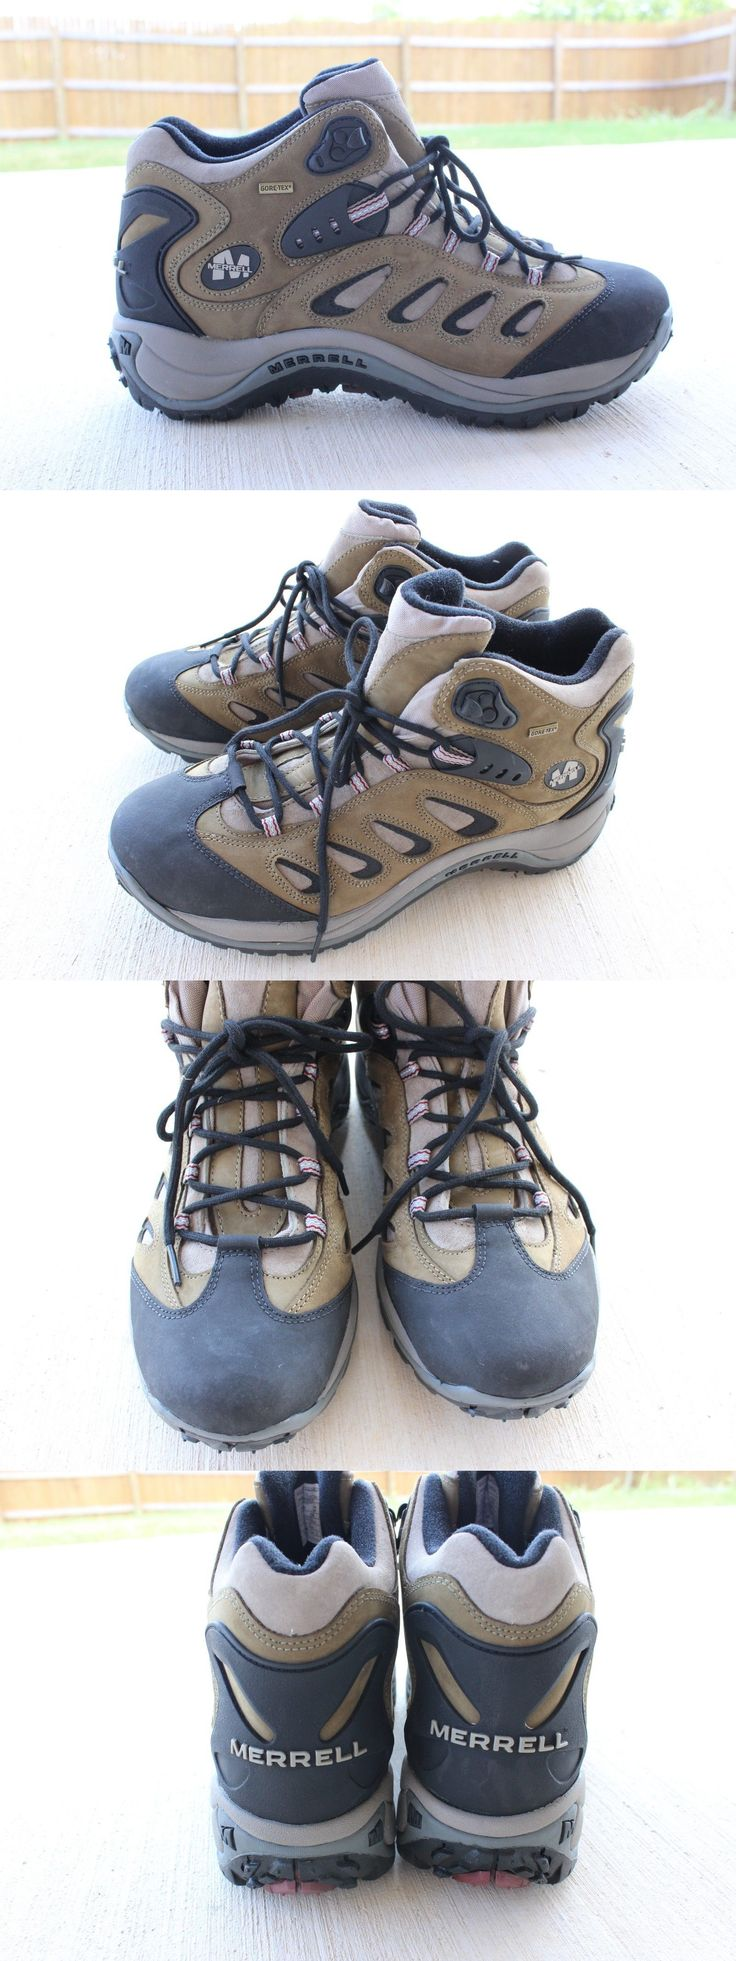 Mens 181392: Merrell Boots Shoes Hiking Mid Rise Reflex Gore-Tex Kangaroo Brown Nwob Size 13 -> BUY IT NOW ONLY: $99.99 on eBay!